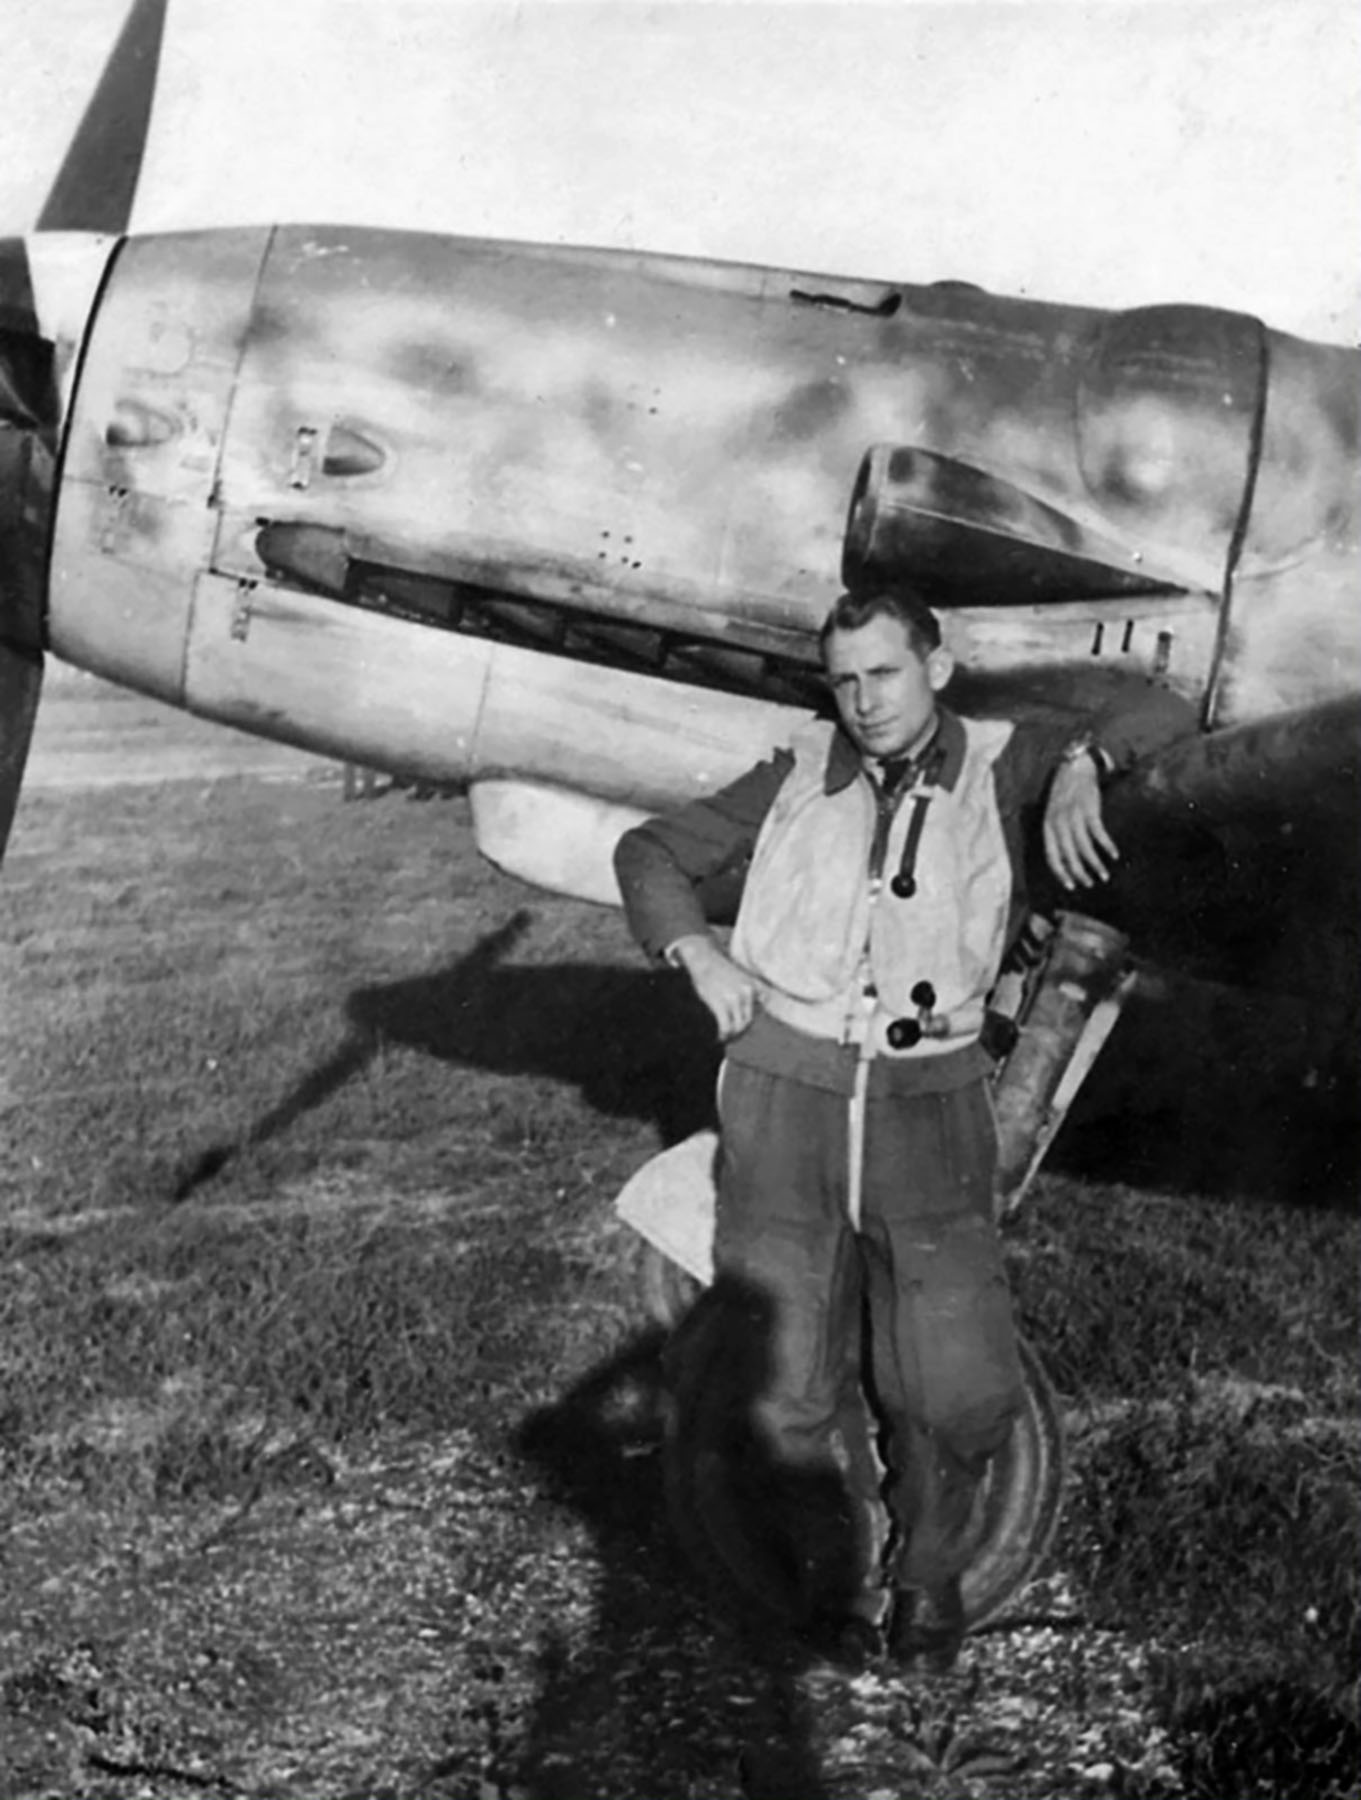 Aircrew Luftwaffe RVT pilot unknown unit along side his Bf 109G6 01